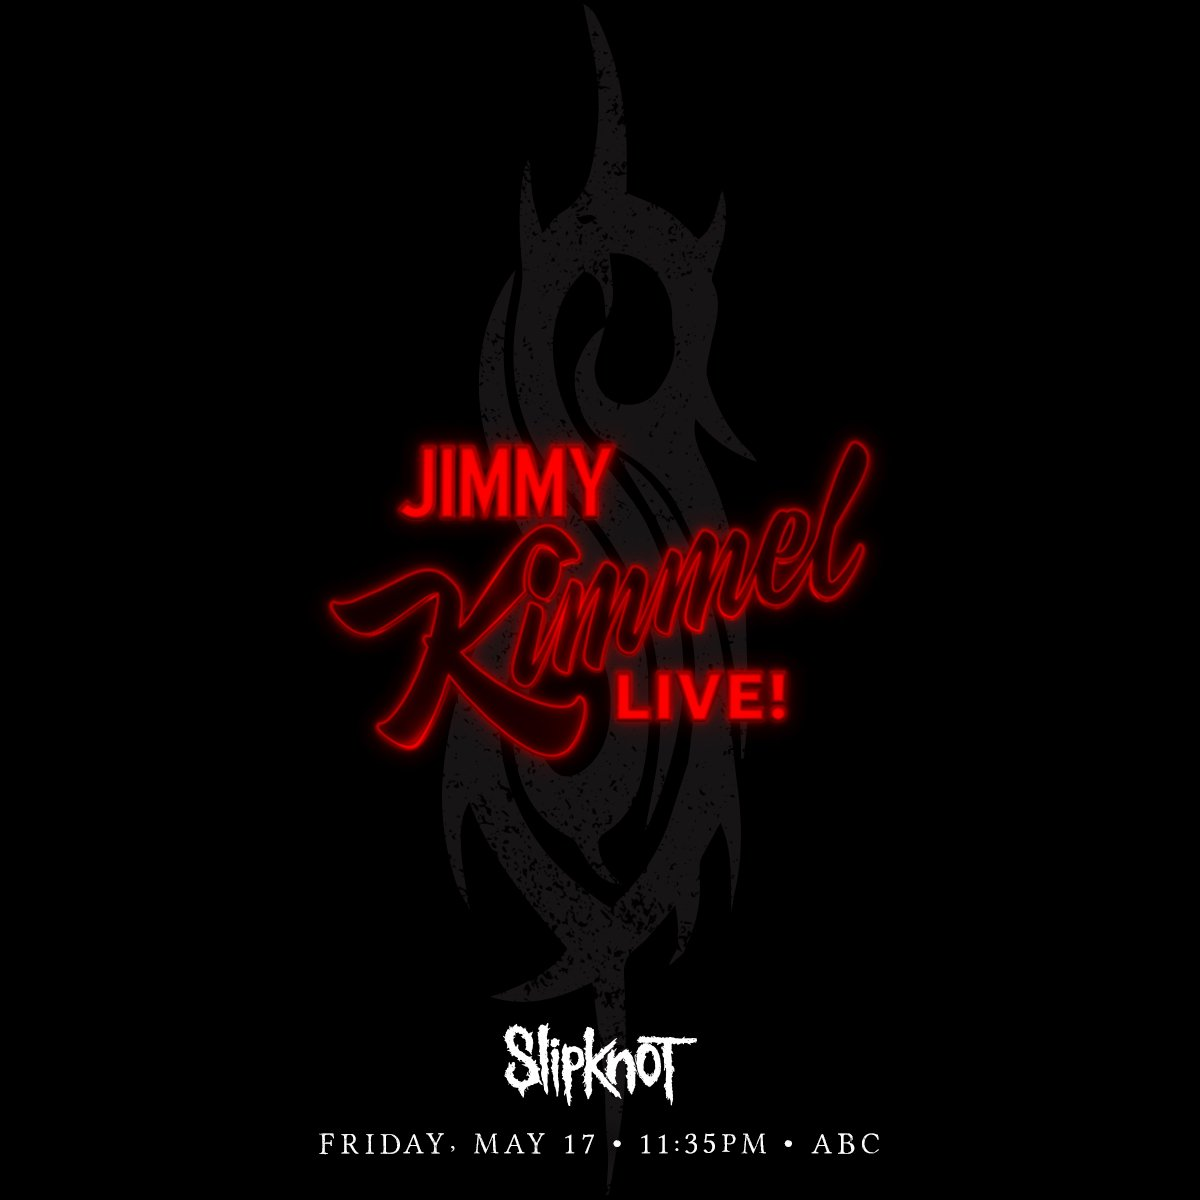 Slipknot Jimmy Kimmel Live 2019